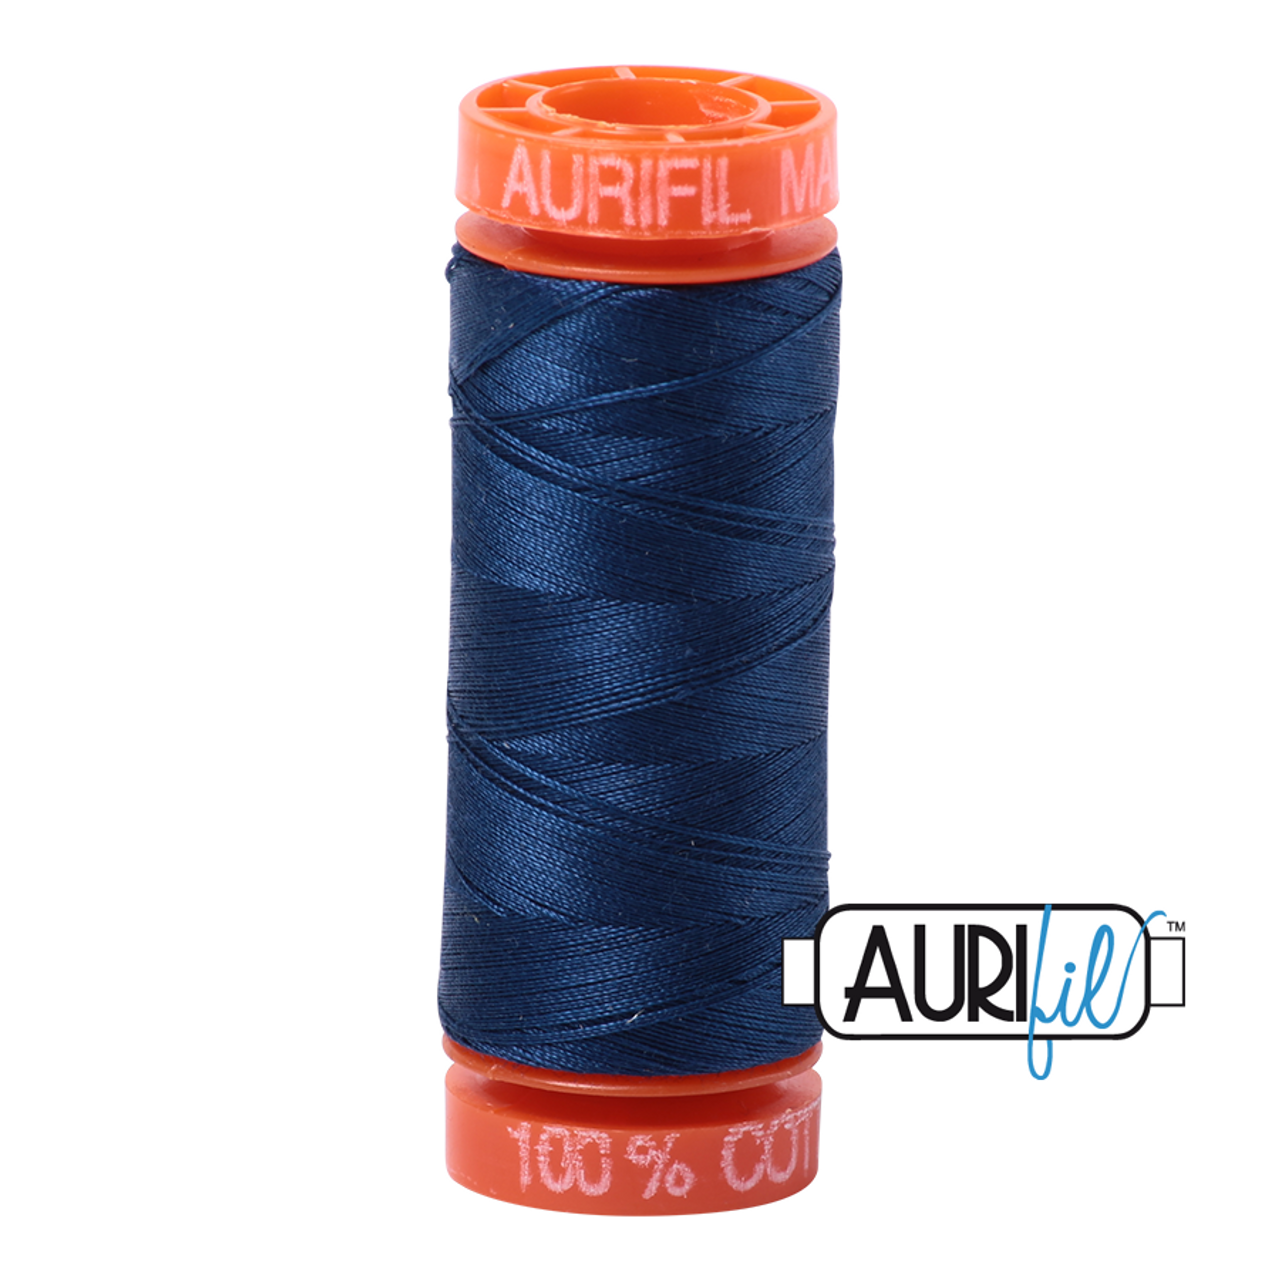 Aurifil Thread 2783 MEDIUM DELFT BLUE Cotton Mako 50wt Large Spool 1300m